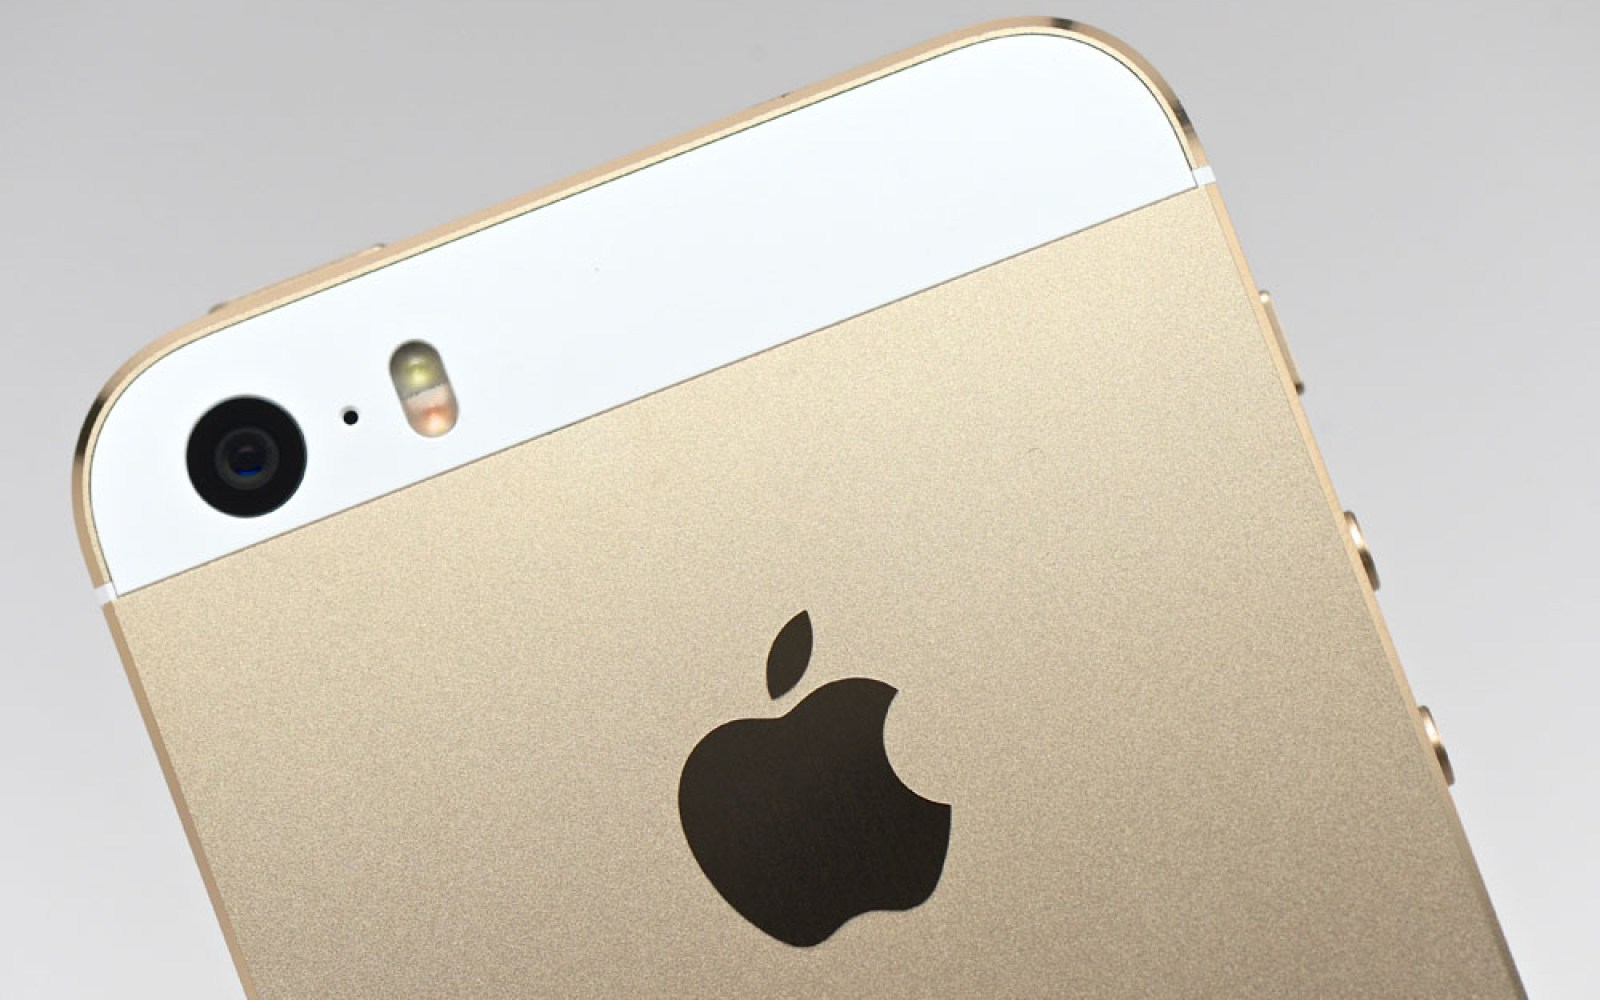 iPhone 5s remains world's best-selling phone, iPhone 5c takes number 5 slot